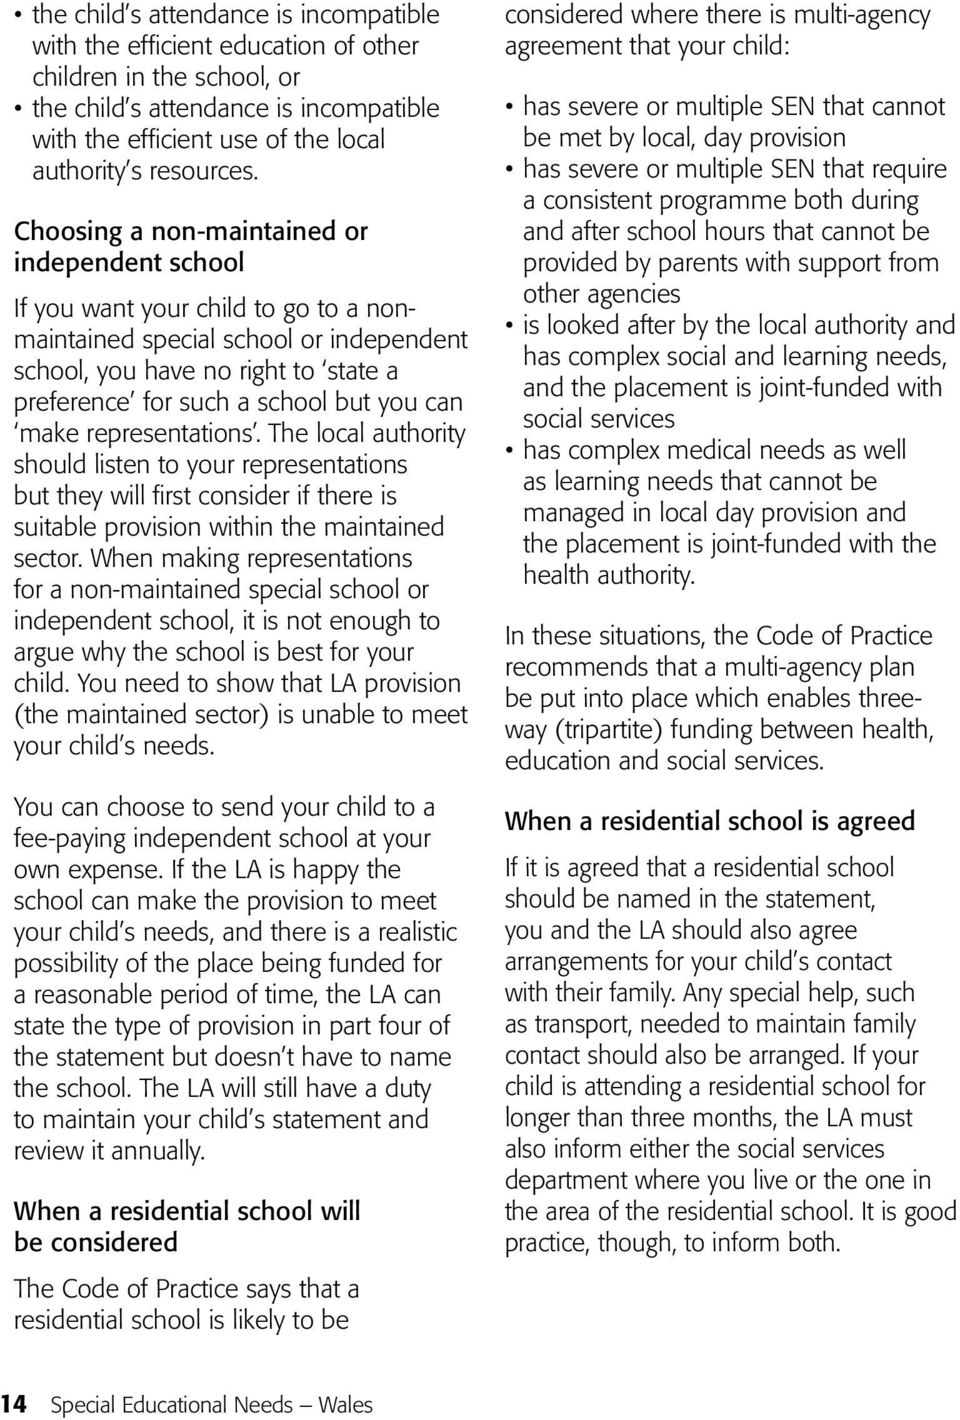 Choosing a non-maintained or independent school If you want your child to go to a nonmaintained special school or independent school, you have no right to state a preference for such a school but you